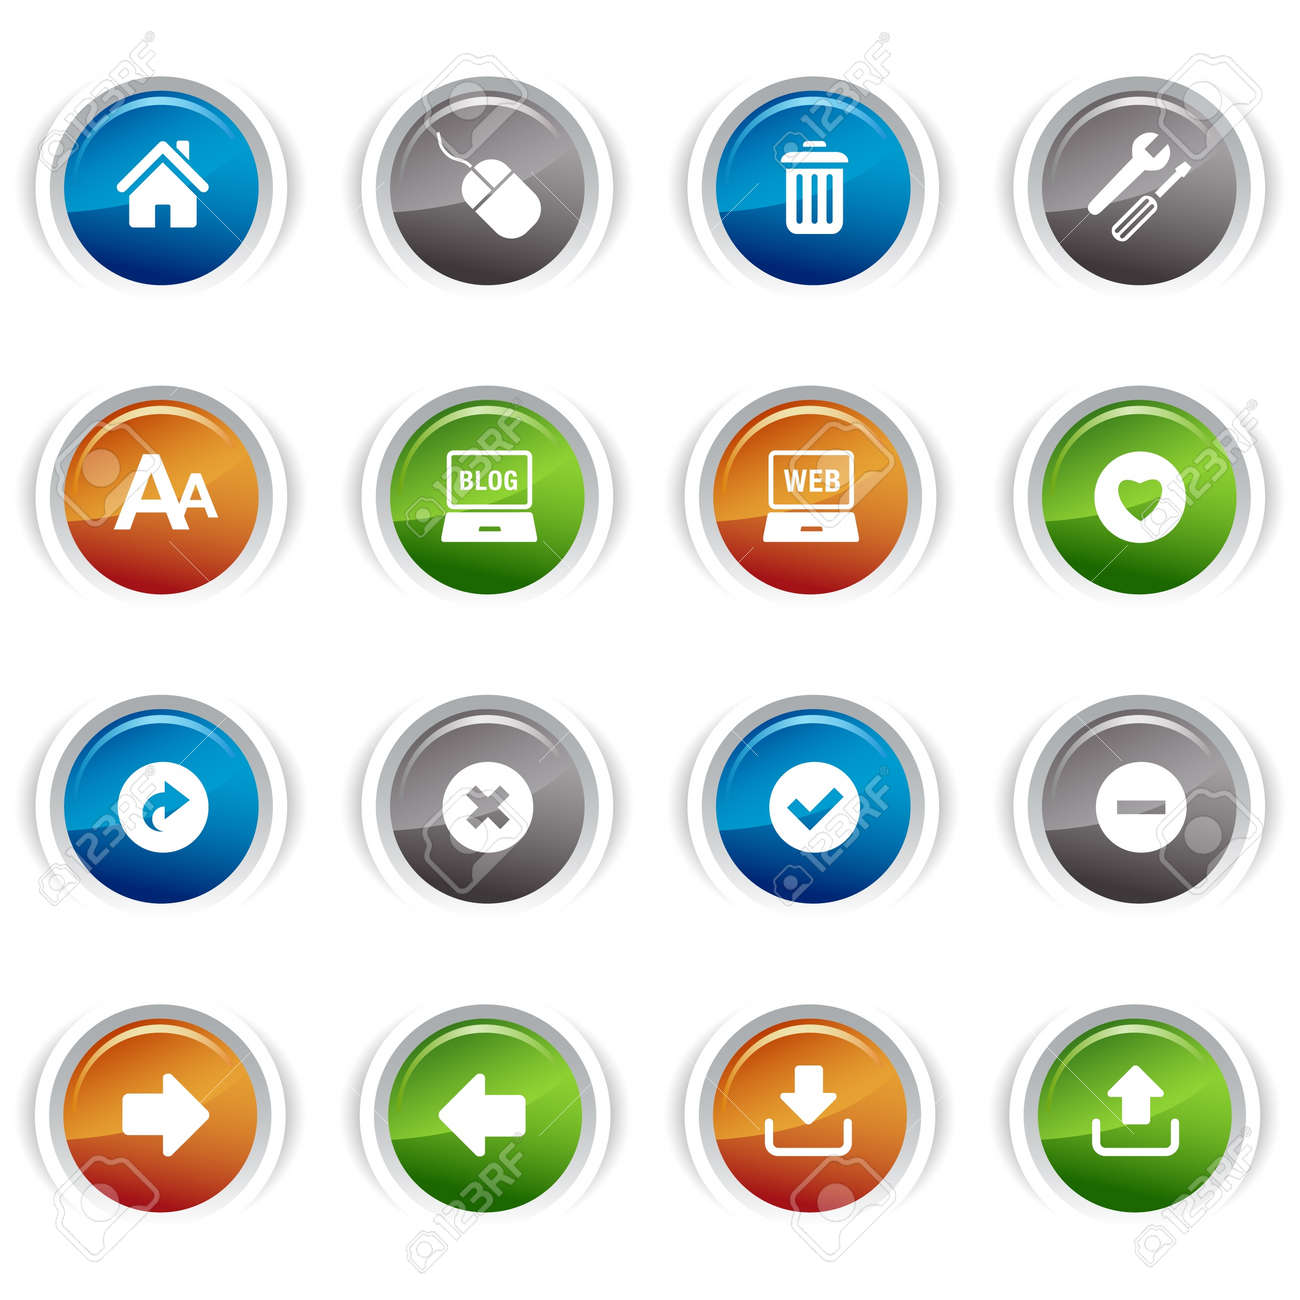 Glossy buttons - classic web icons Stock Vector - 9603529